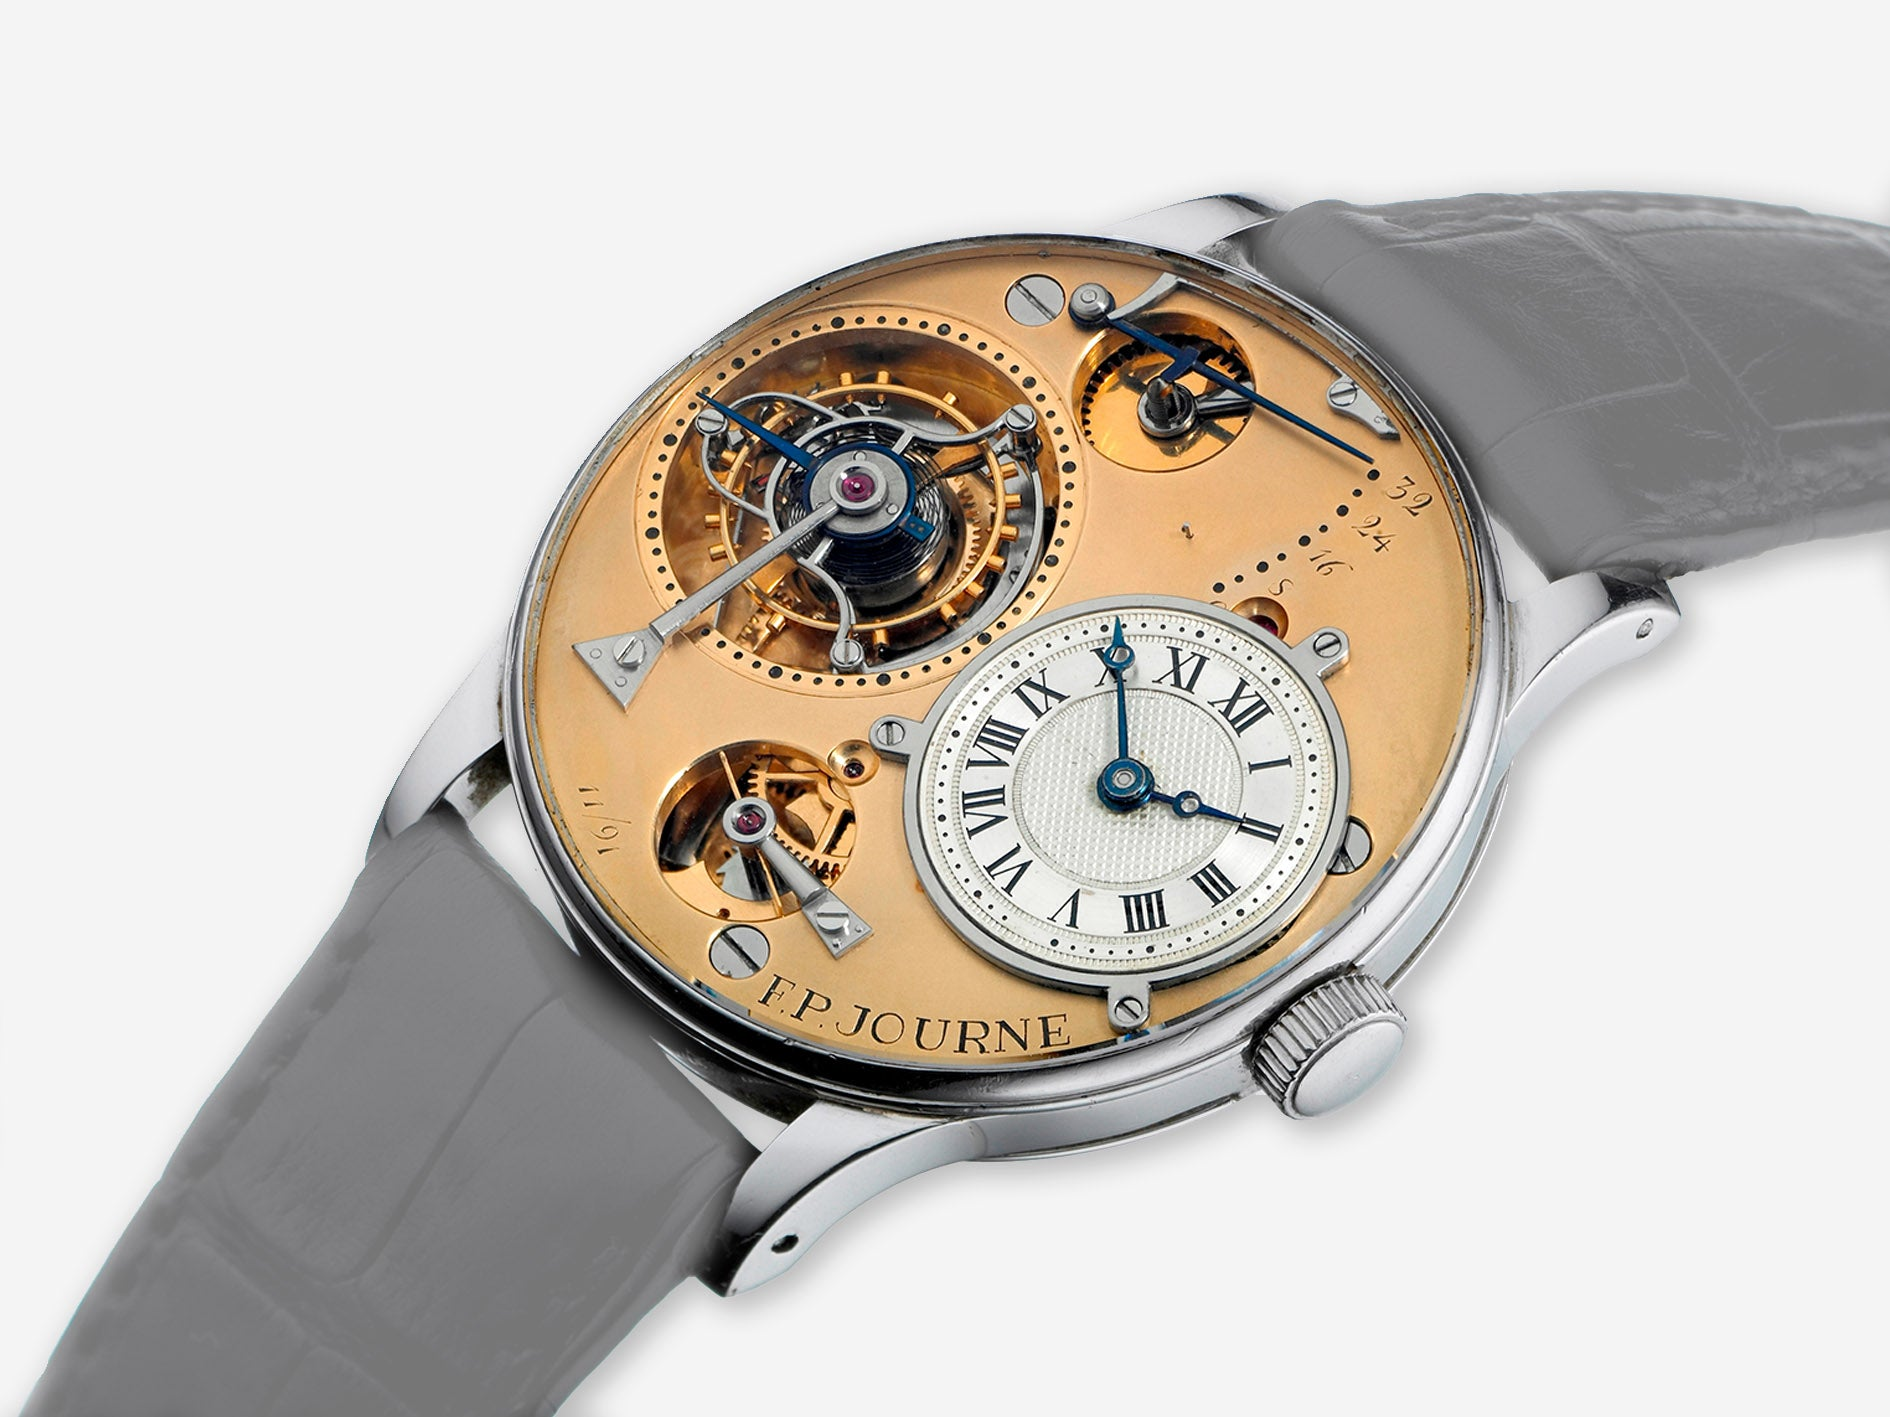 F.P. Journe's first and personal wristwatch made from gold and cased in platinum containing a tourbillon with remontoire